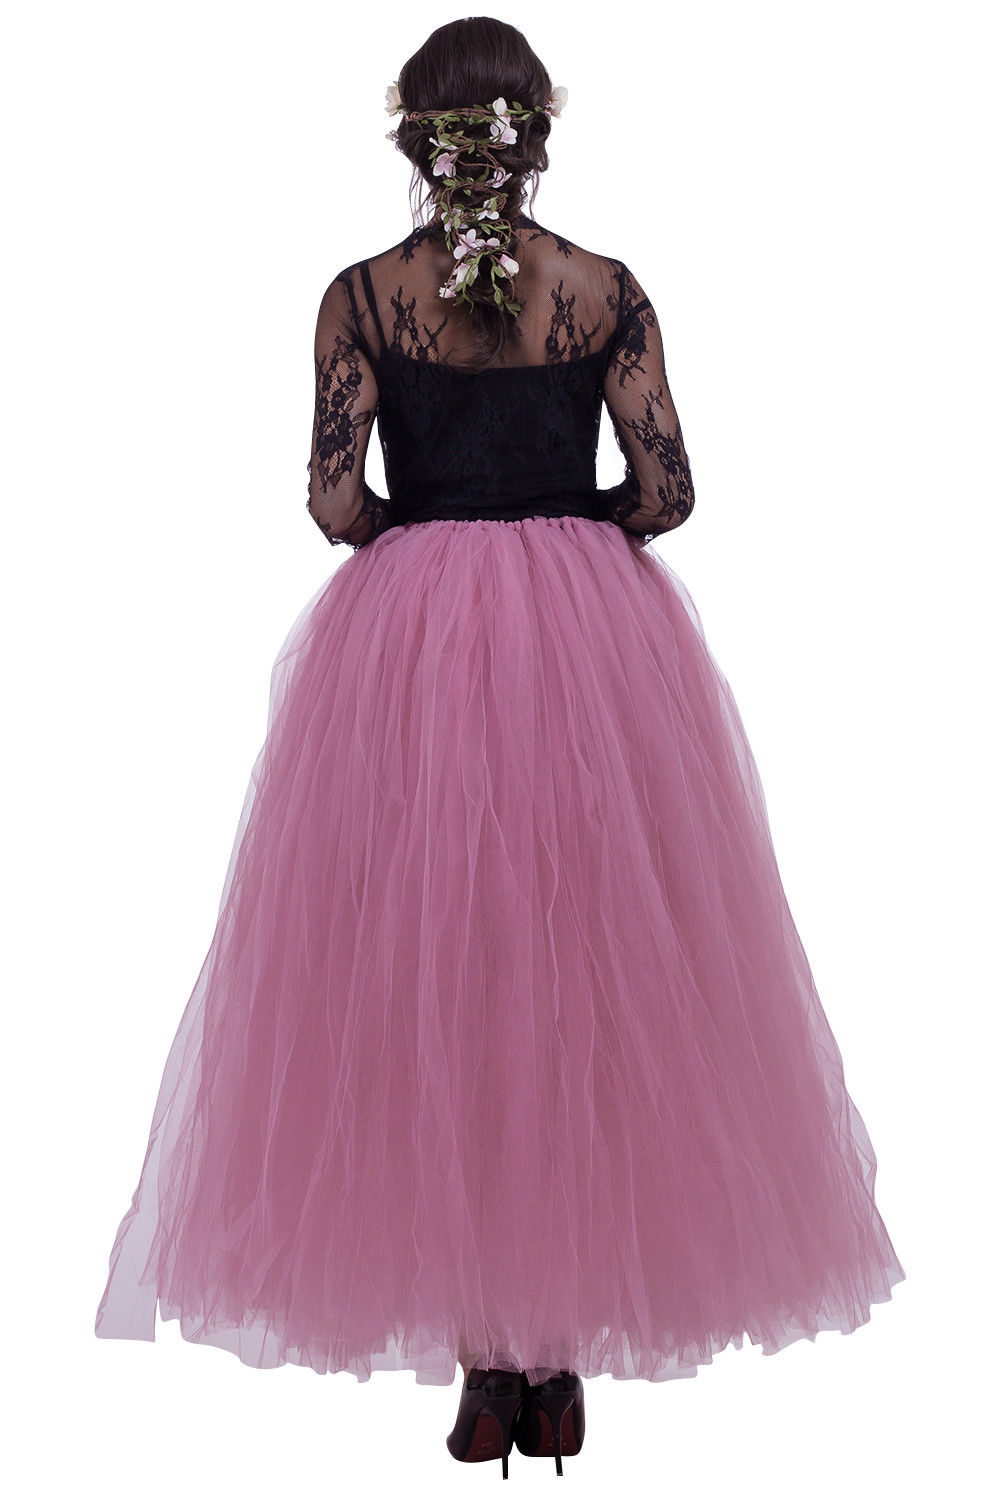 Summer Tulle Skirts Layers Women Long Maxi Skirt Ball Gown Mesh Adult Tutu Skirt Princess Ballet Dancewear Party Costume in Skirts from Women 39 s Clothing